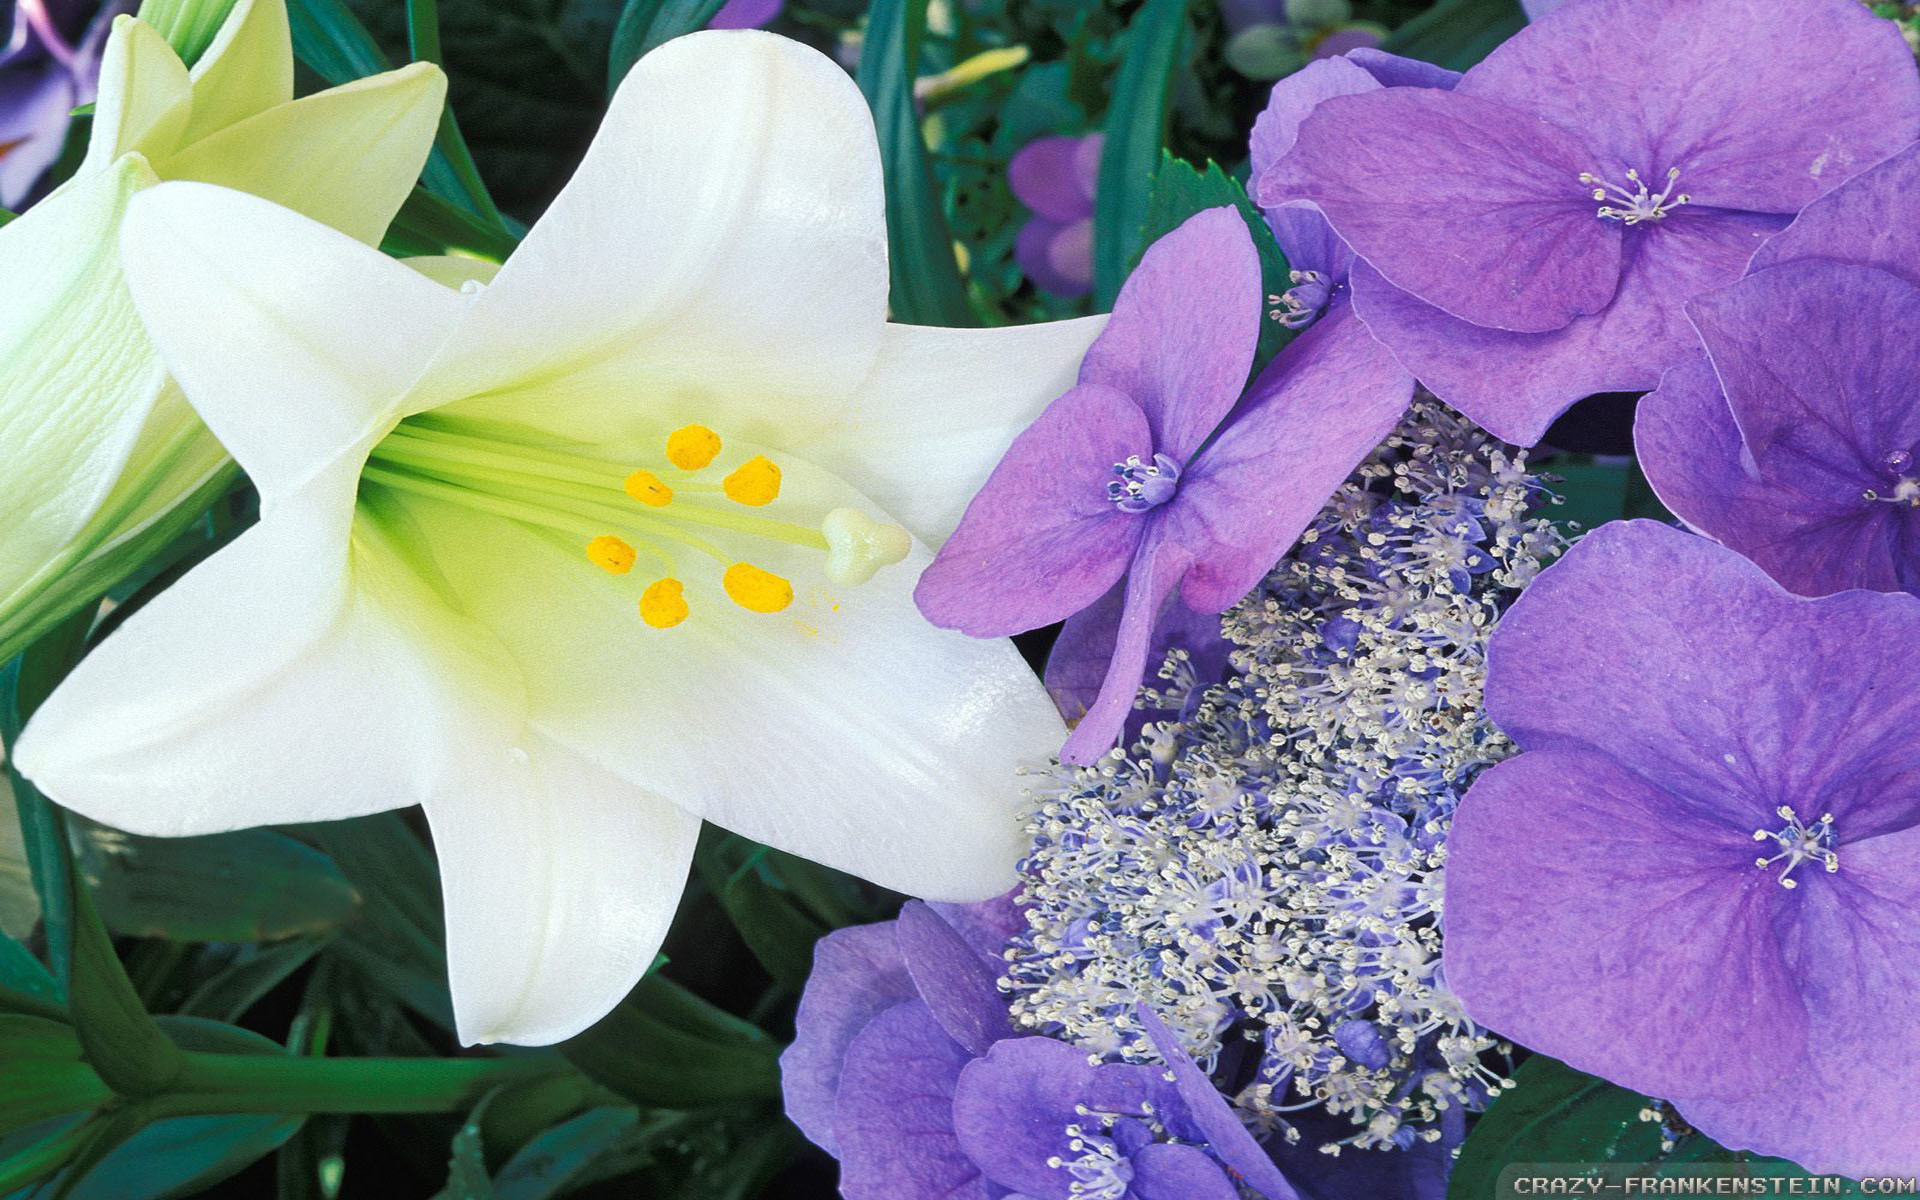 1920x1200 Wallpaper: Hydrangea and Easter lily. Resolution: 1024x768 | 1280x1024 |  1600x1200. Widescreen Res: 1440x900 | 1680x1050 |